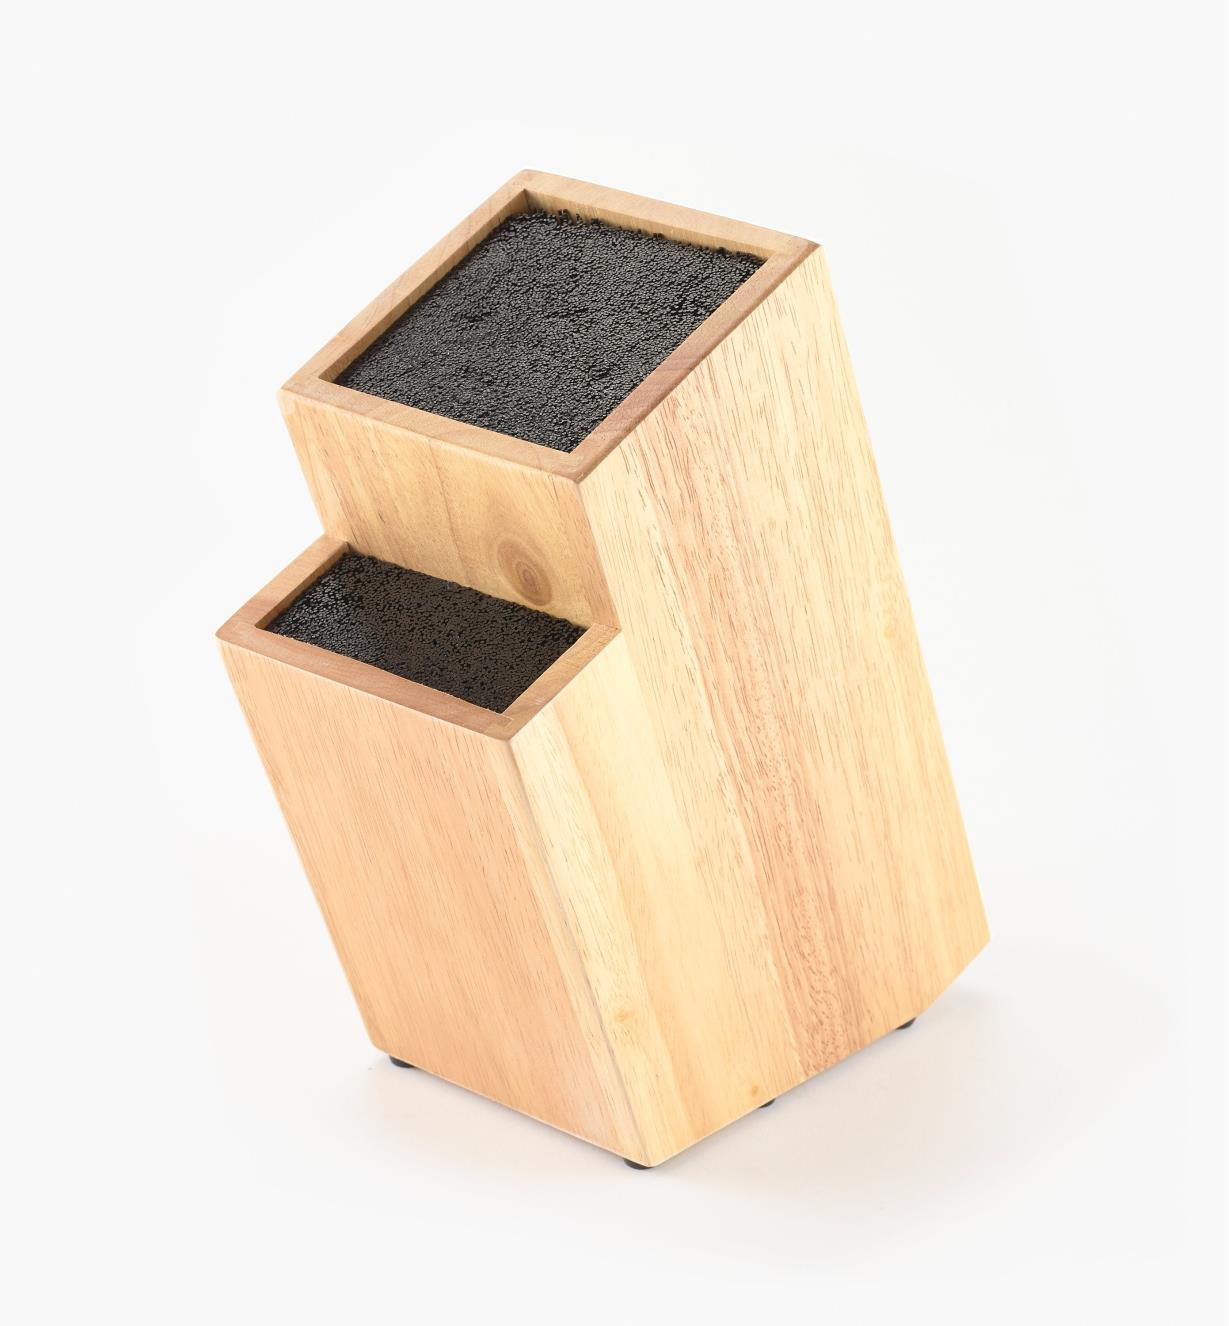 EV192 - Knife Block